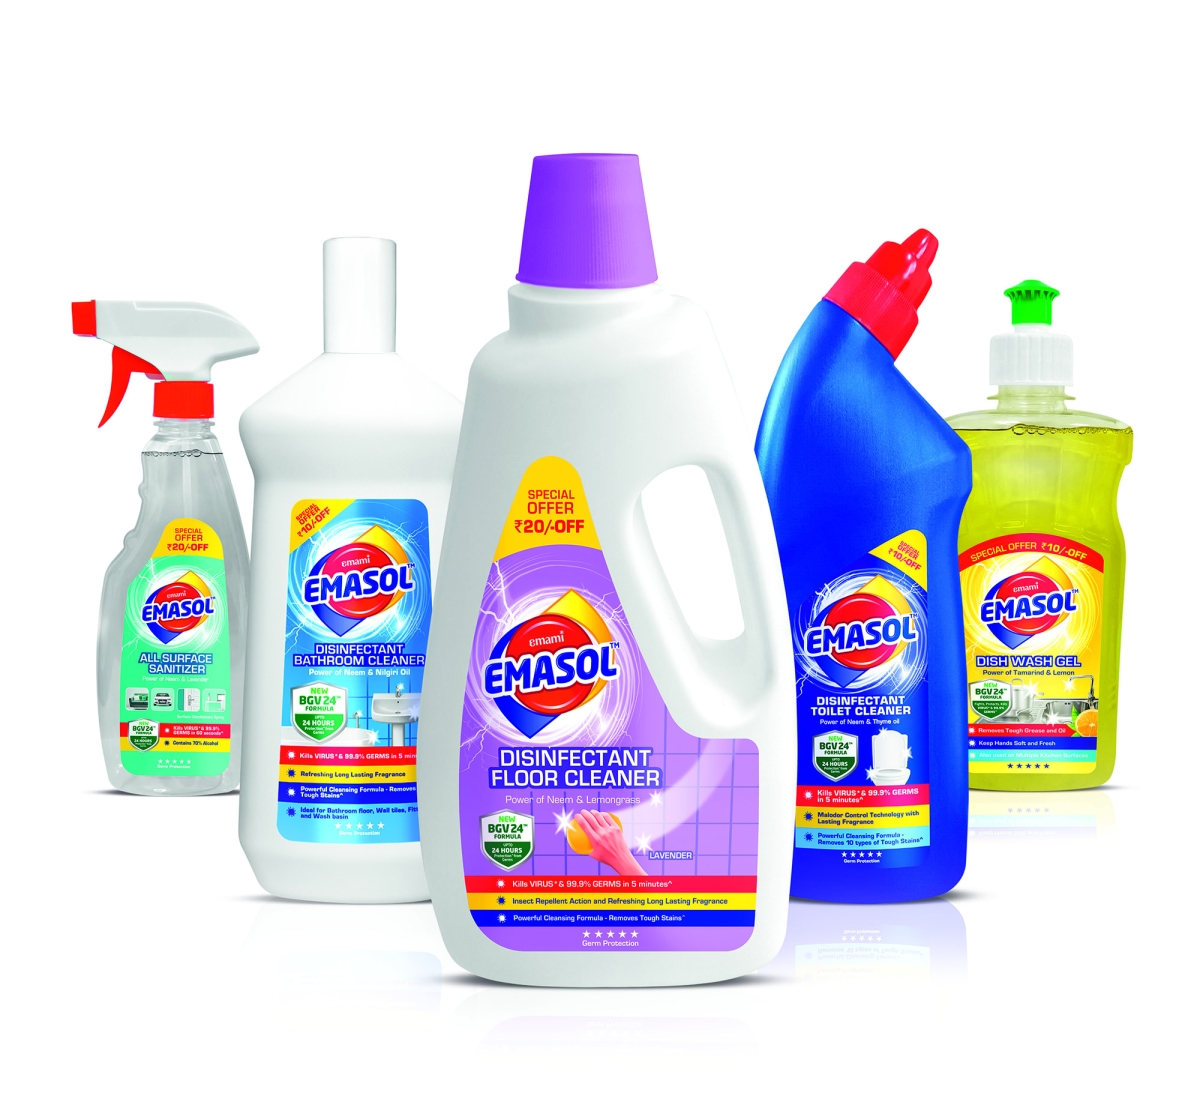 EMASOL's range of home hygiene products